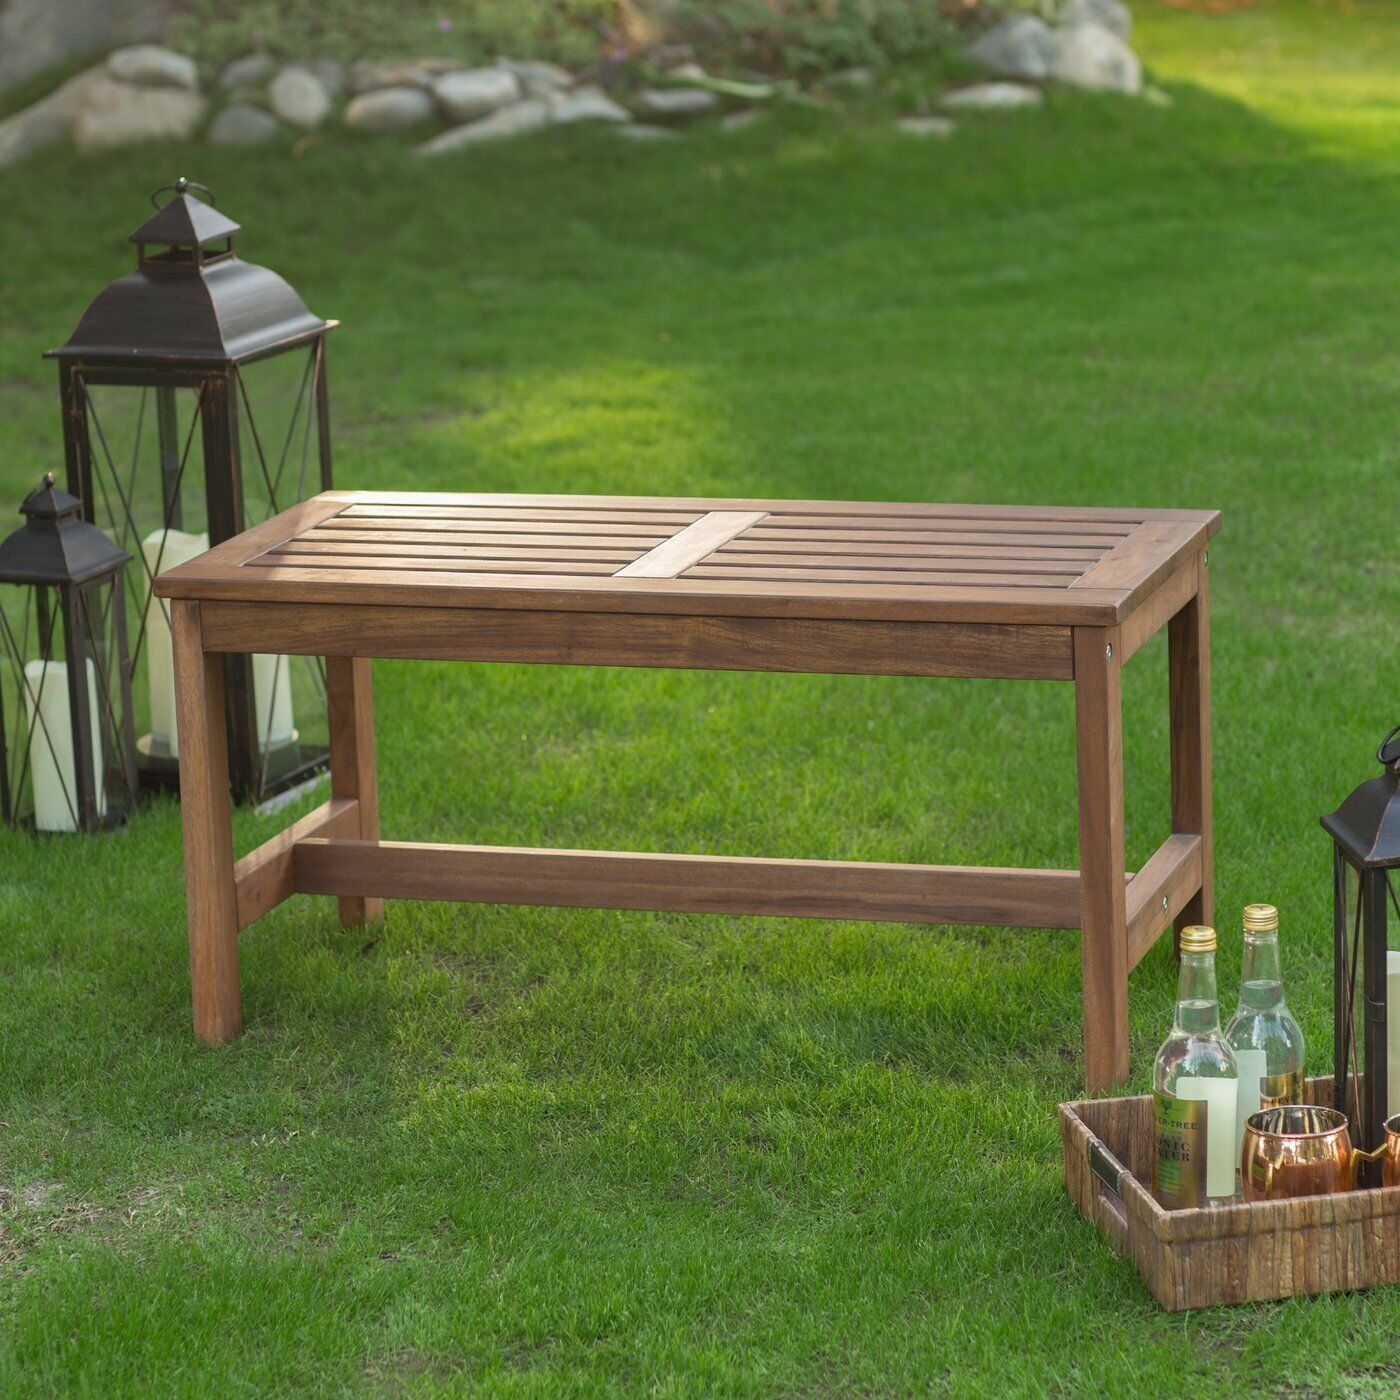 Wooden Benches Outdoor: Outdoor Wood Bench Patio Accent Garden Deck Porch Entryway